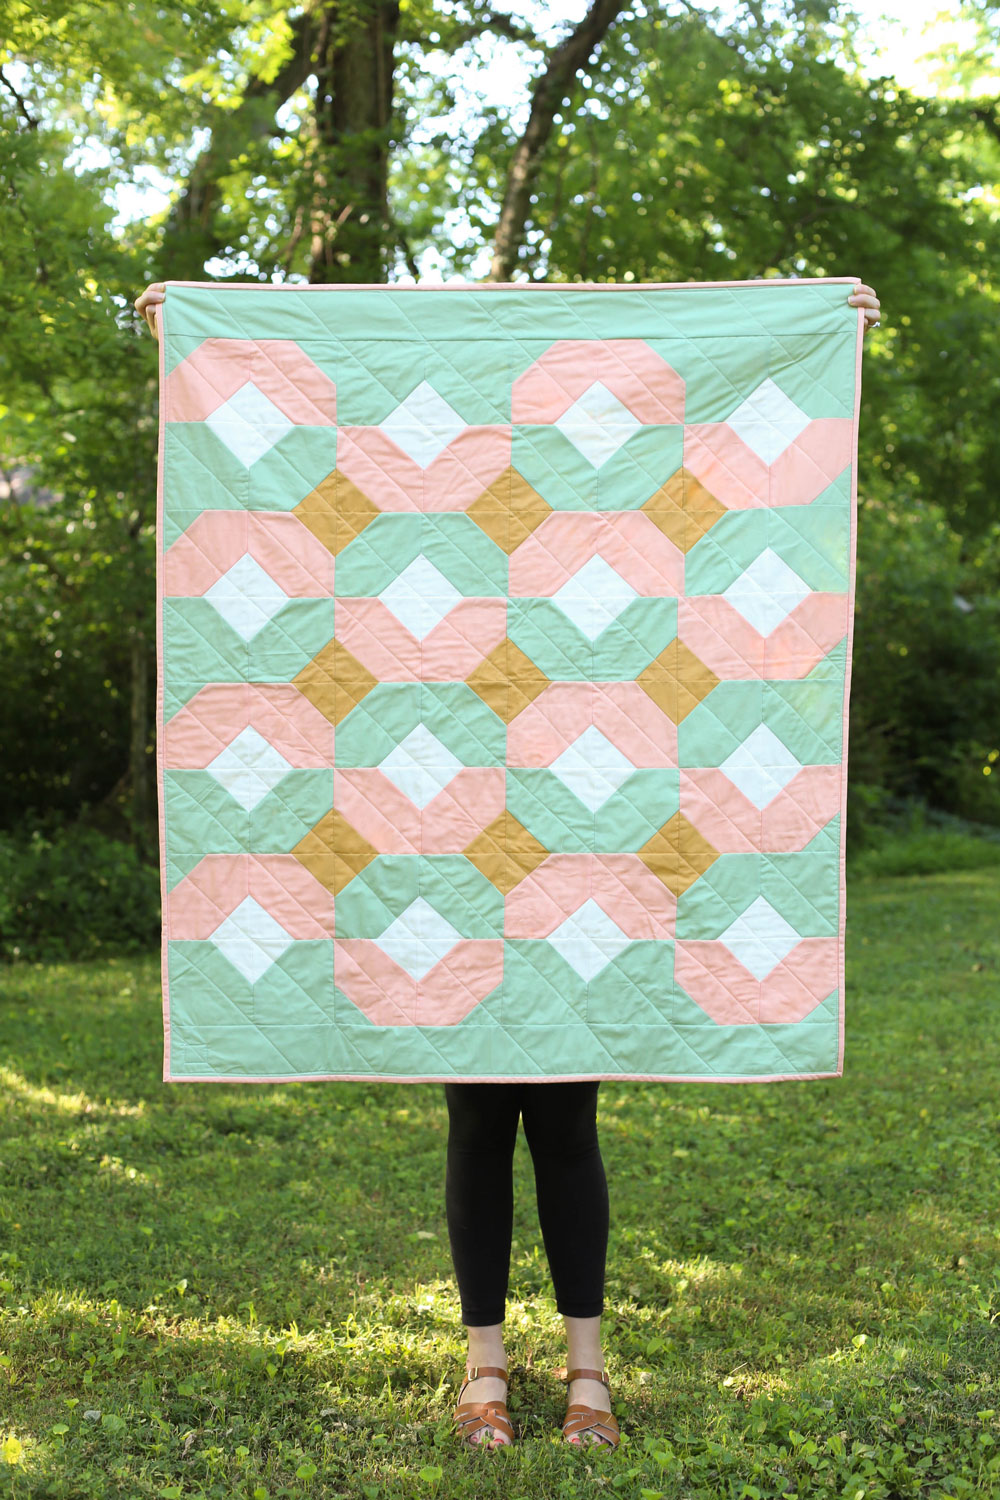 This pink and mint green baby quilt is perfect for sping! The Glitter and Glow quilt pattern comes in king through baby quilt sizes and is beginner friendly.